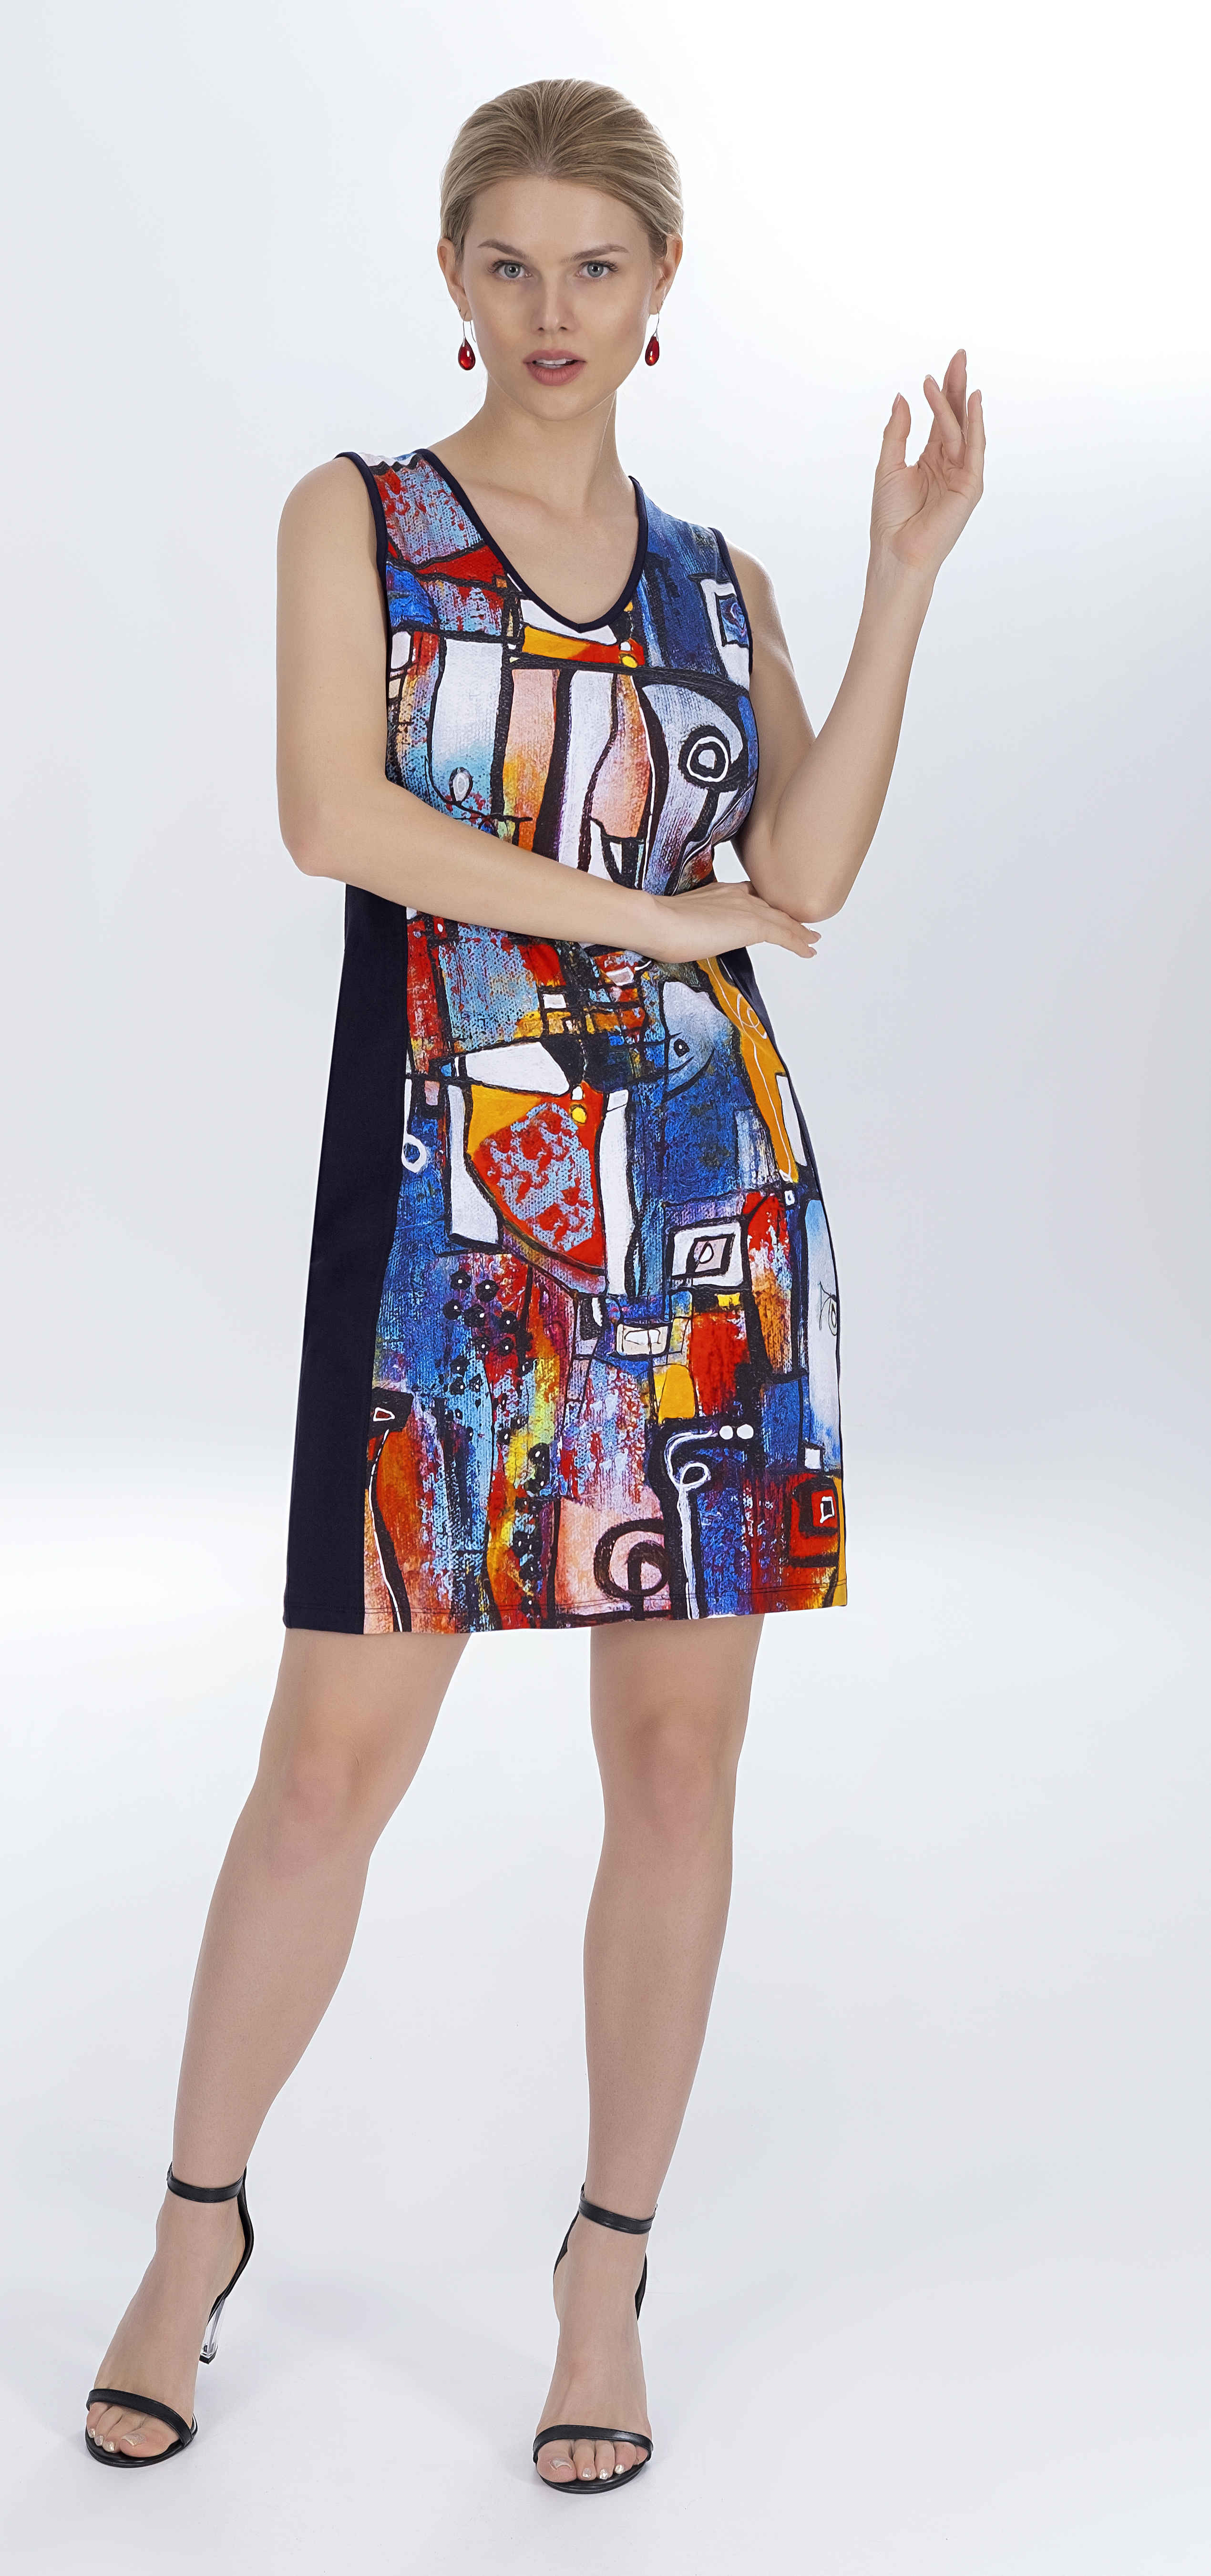 Simply Art Dolcezza: It's Complicated Crazy Cool Contrast Art Dress/Tunic (1 Left!)